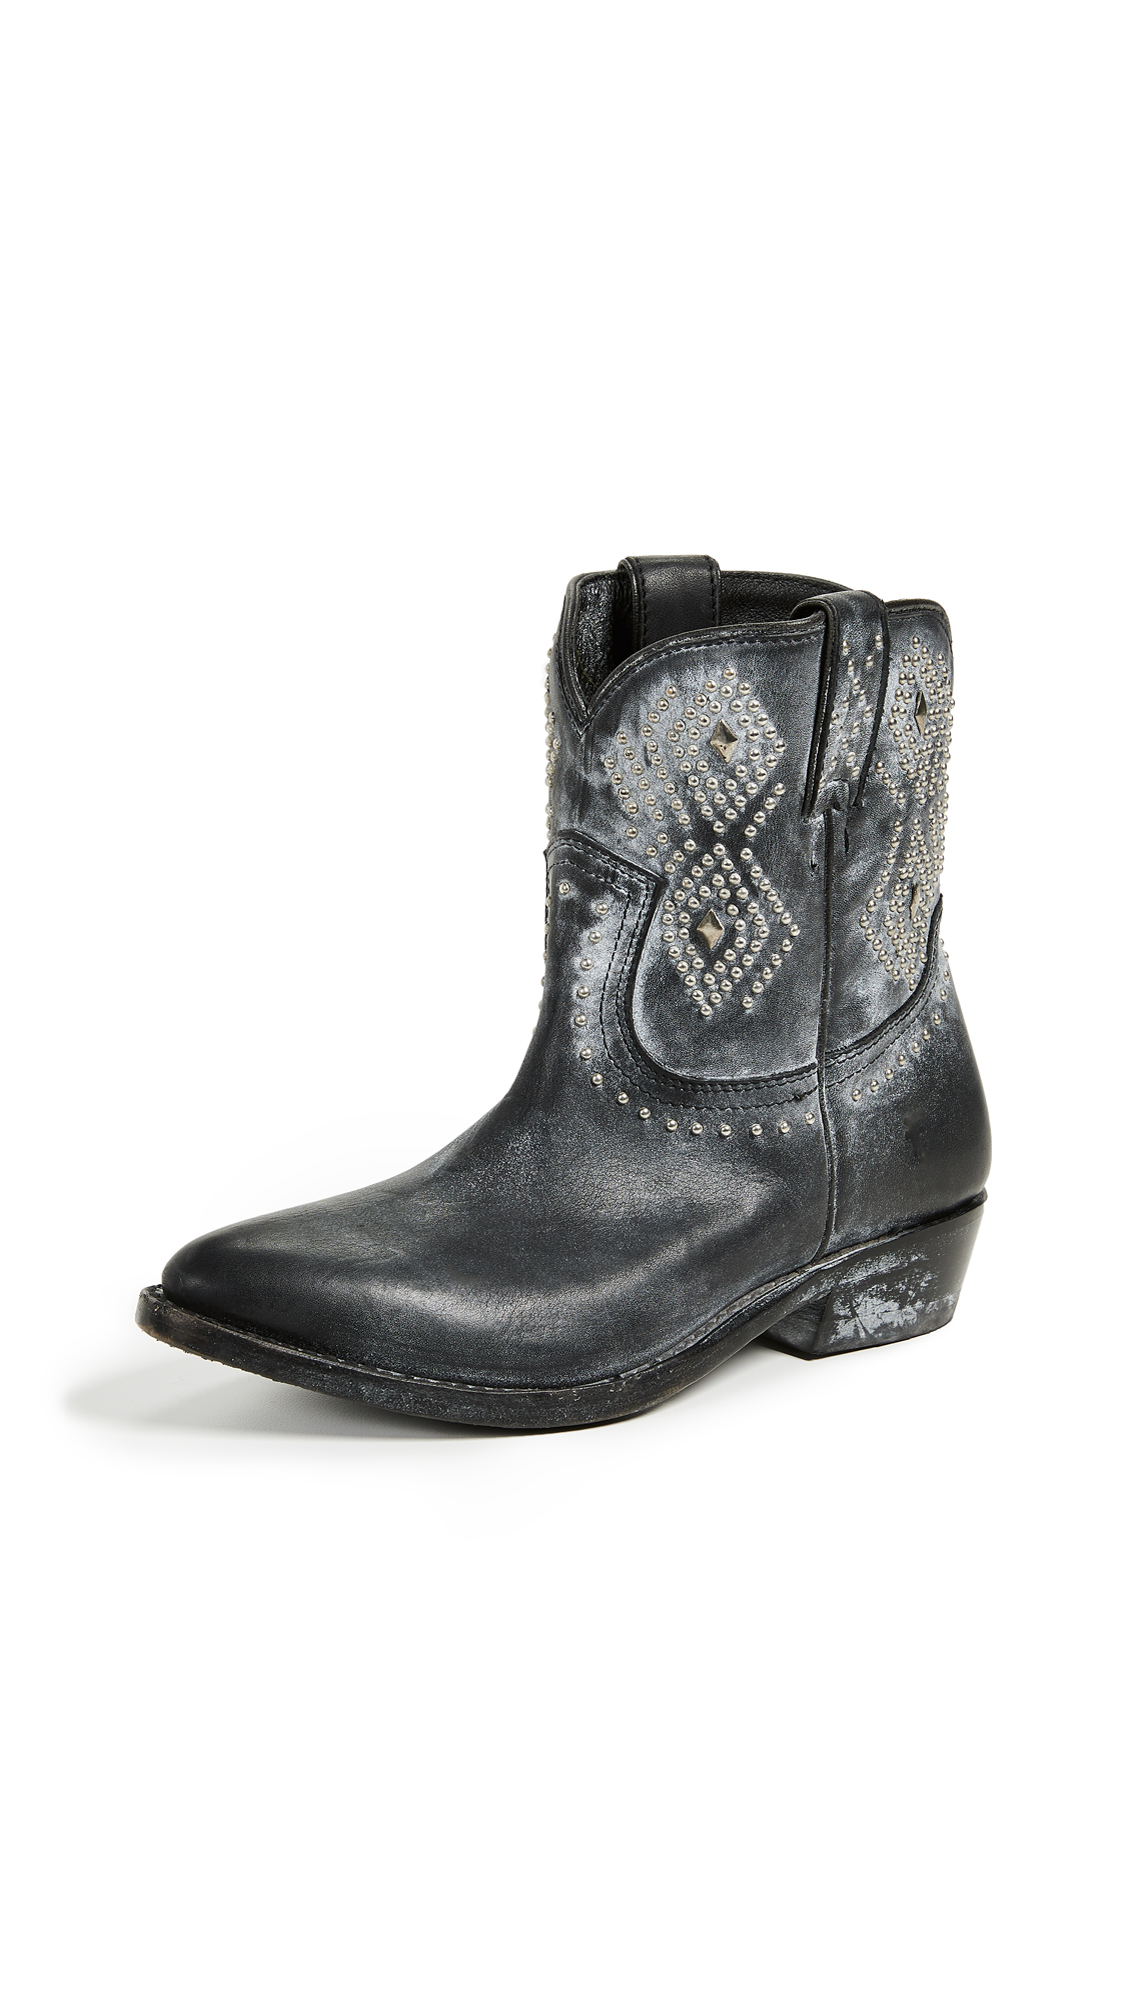 FRYE Women'S Billy Distressed Leather Low-Heel Western Boots in Black